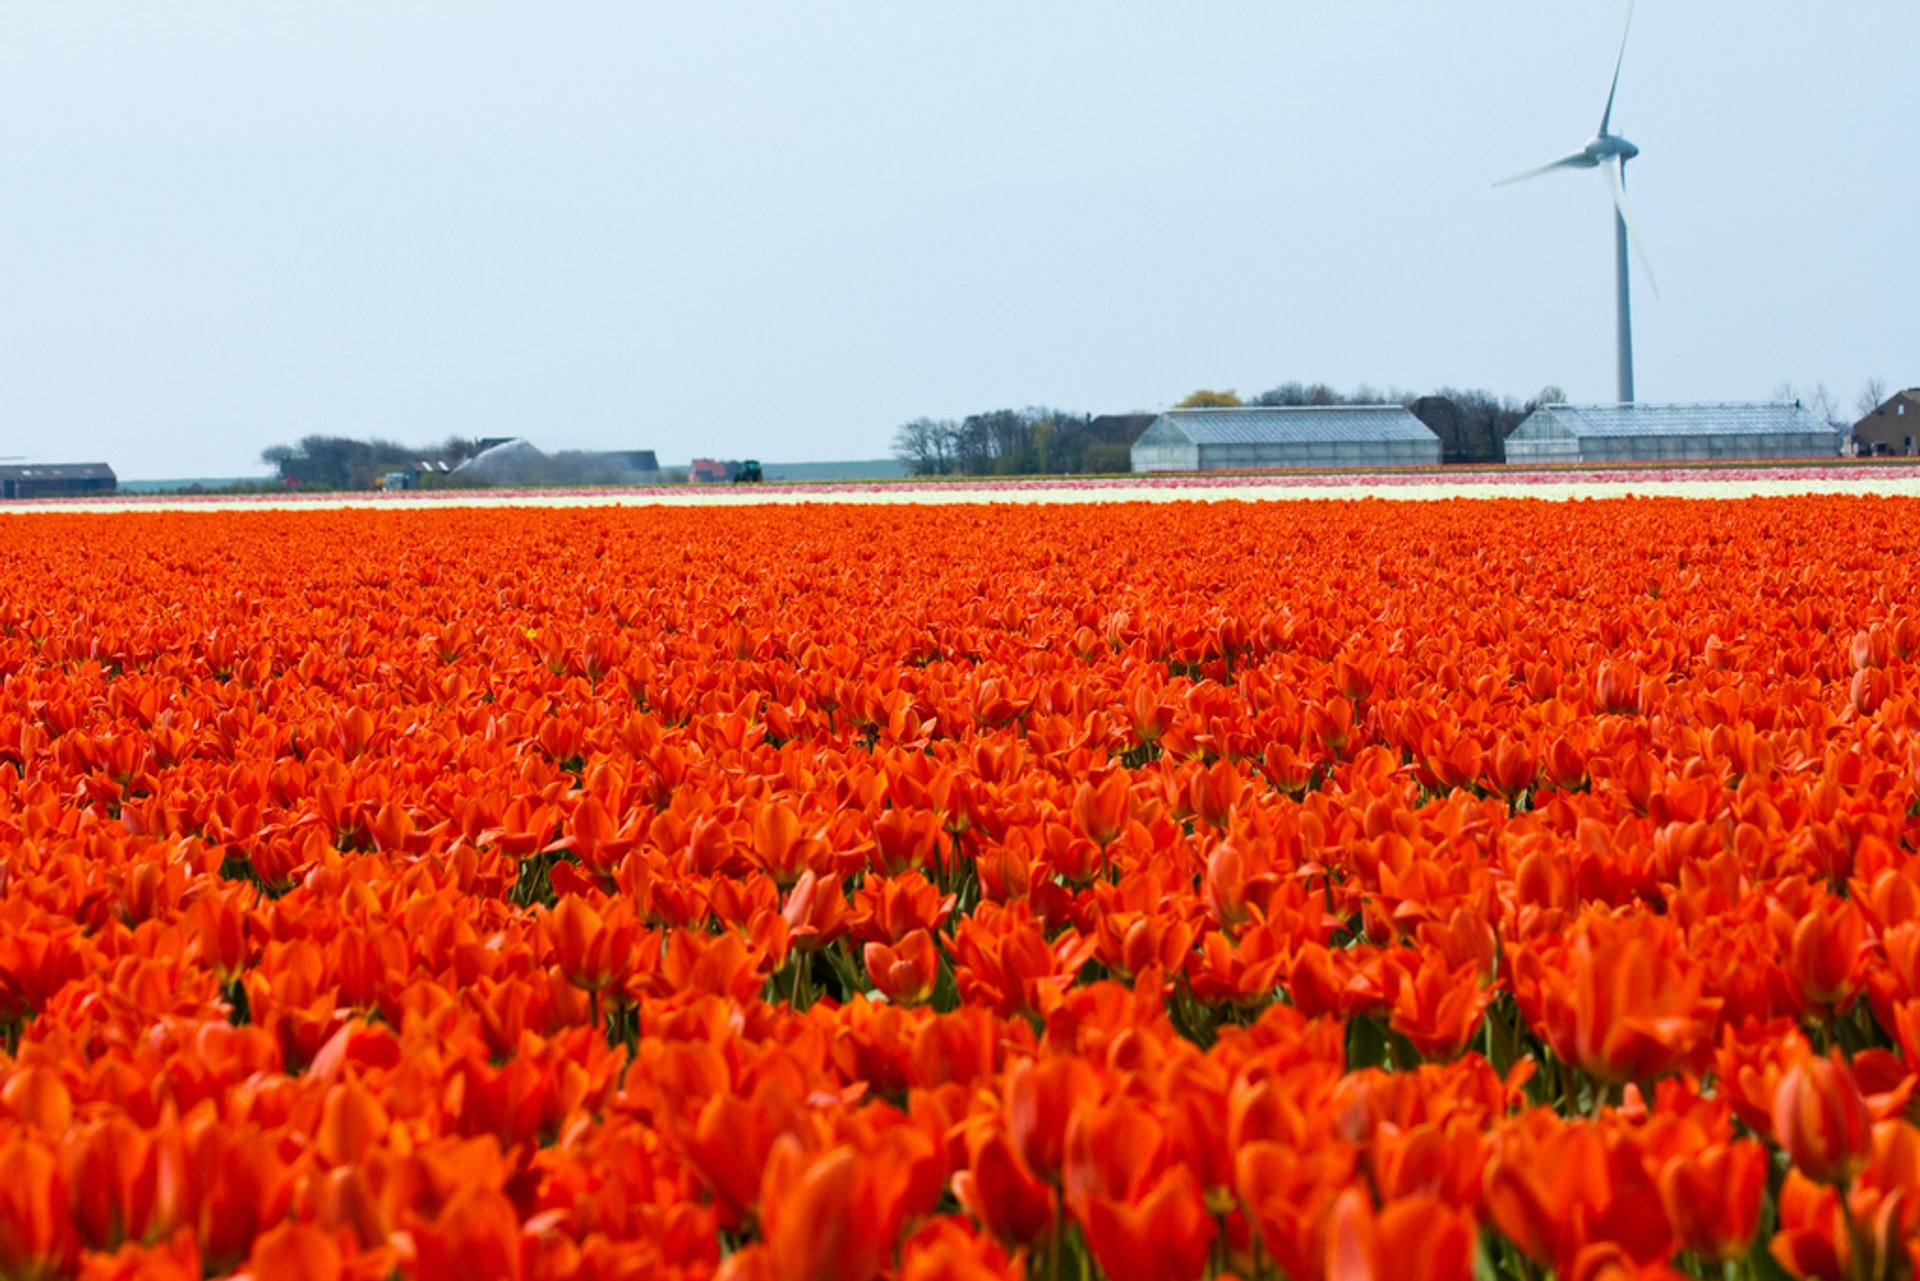 Red tulips field, Den Helder, The Netherlands 2020